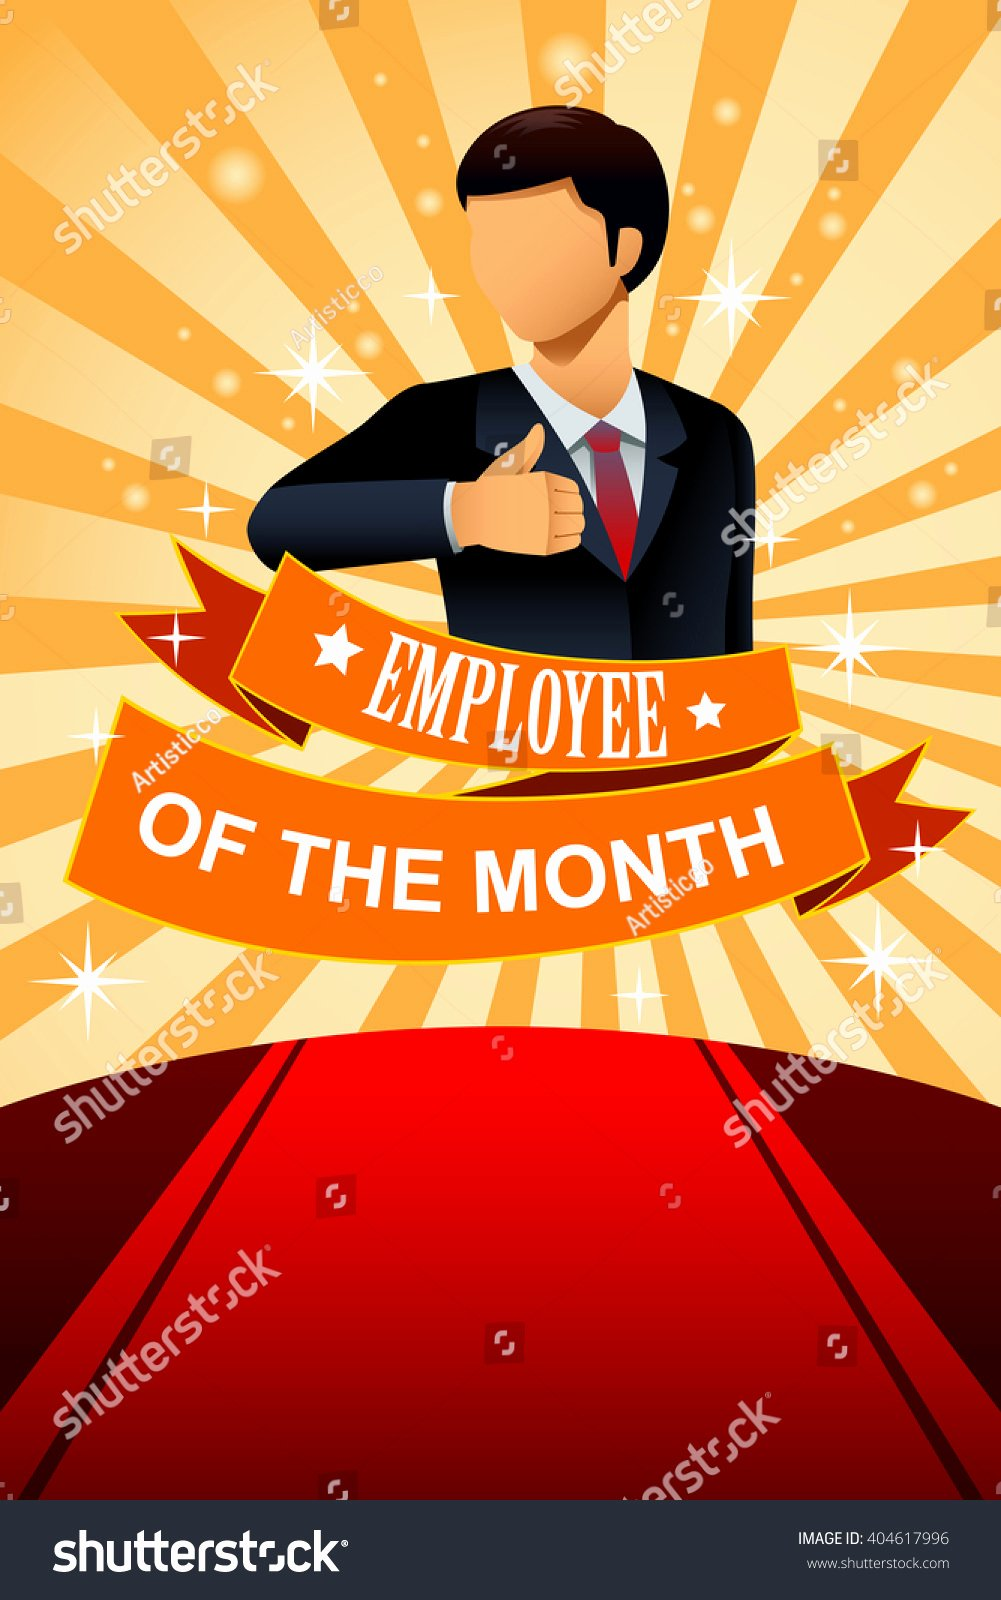 Employee Of the Month Frame Best Of A Vector Illustration Employee the Month Poster